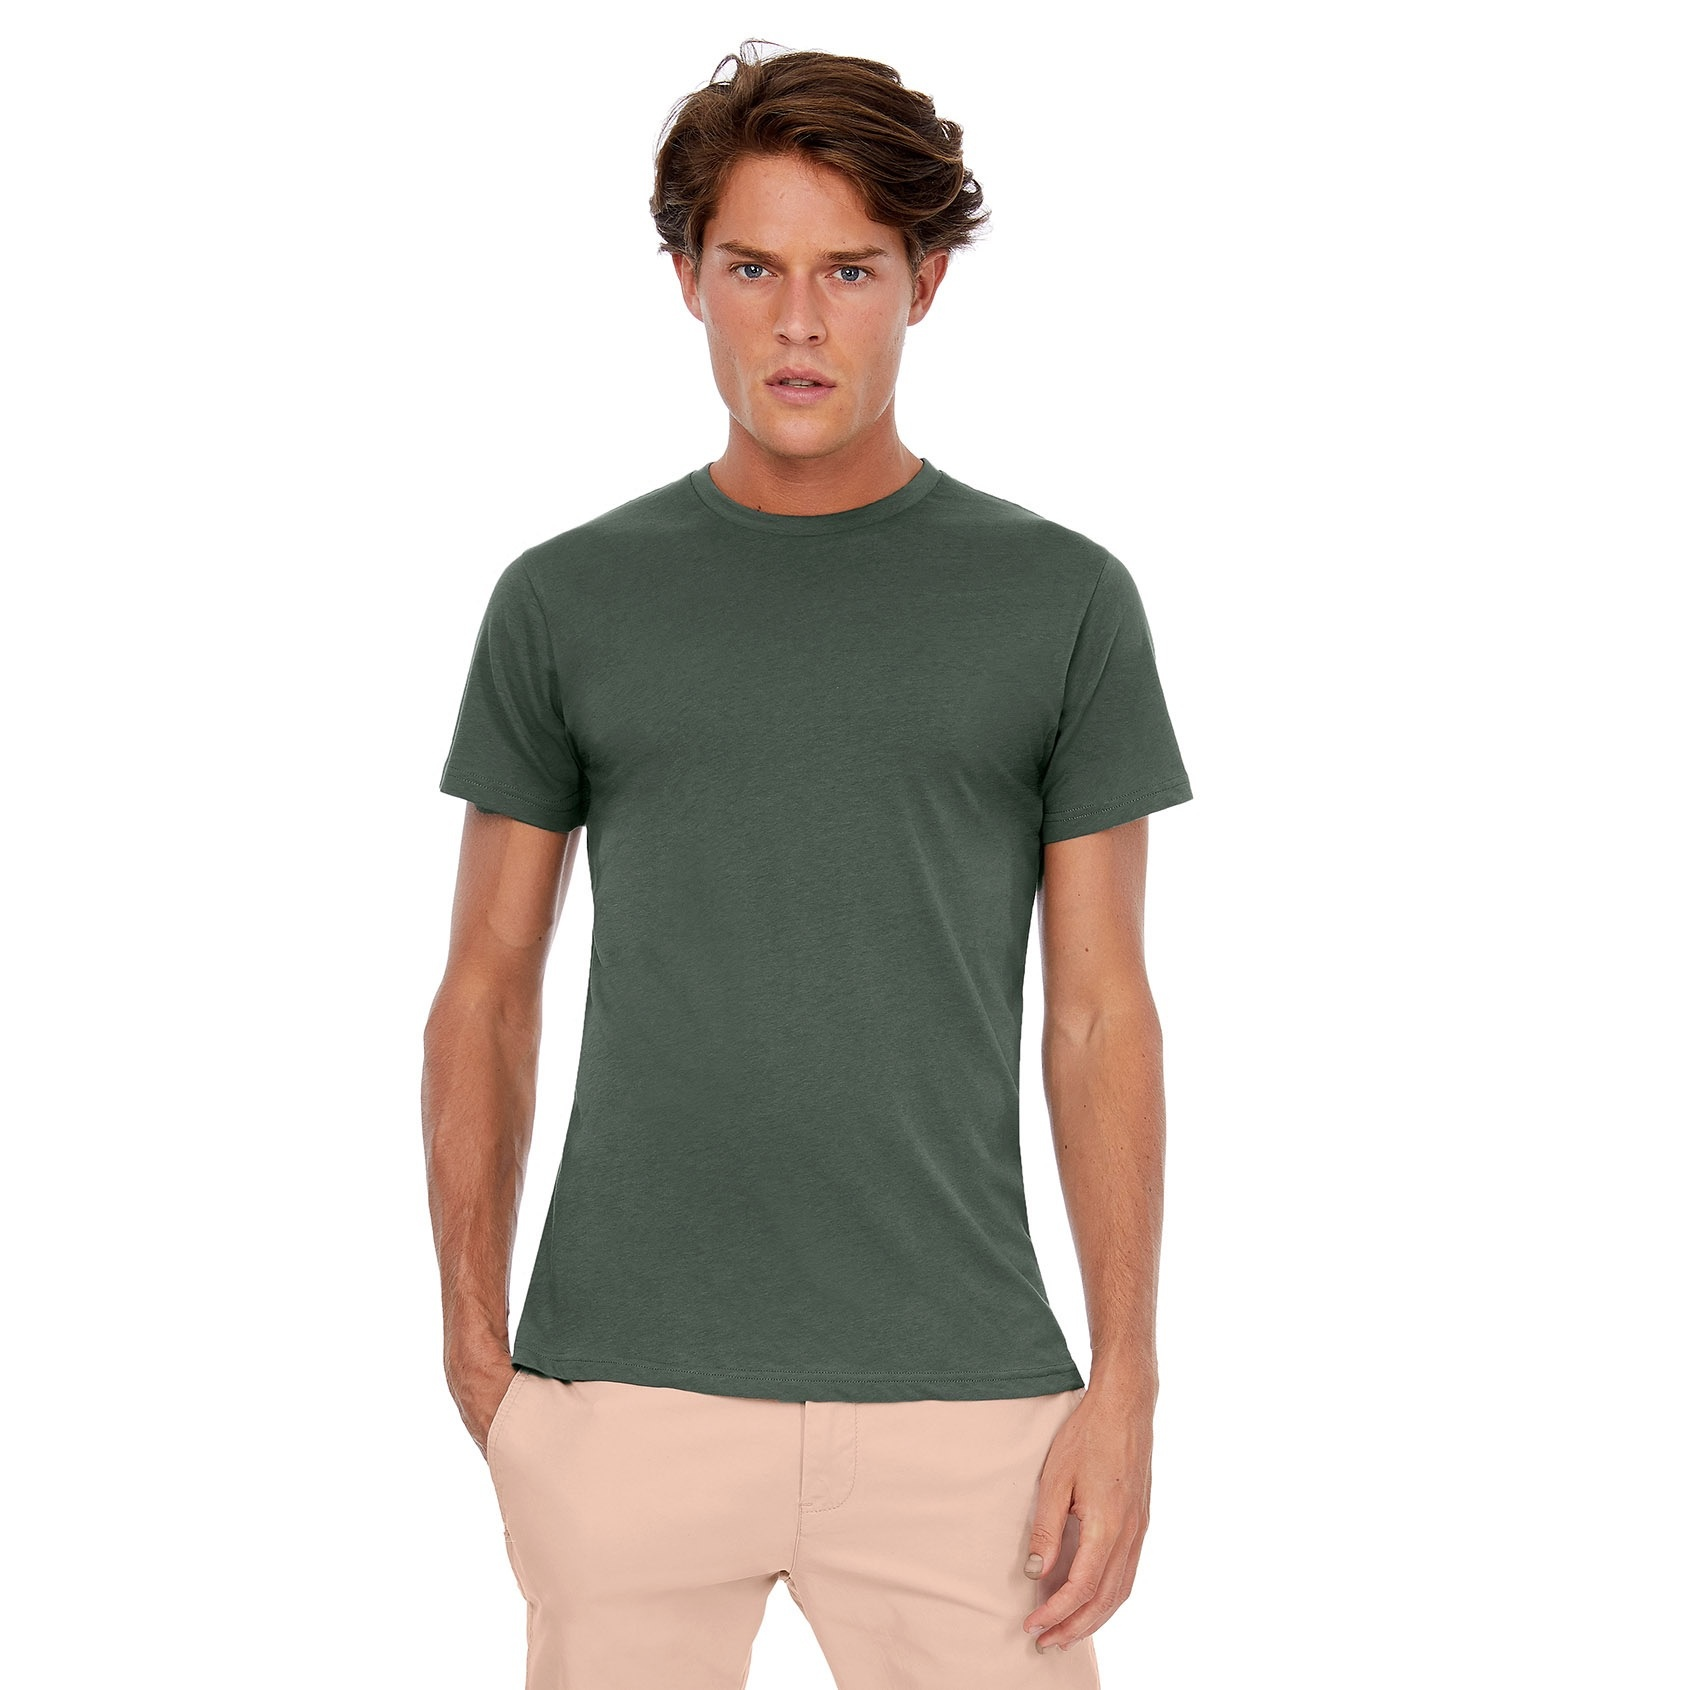 24871833b4e B&C Inspire T /men | B&C Collection